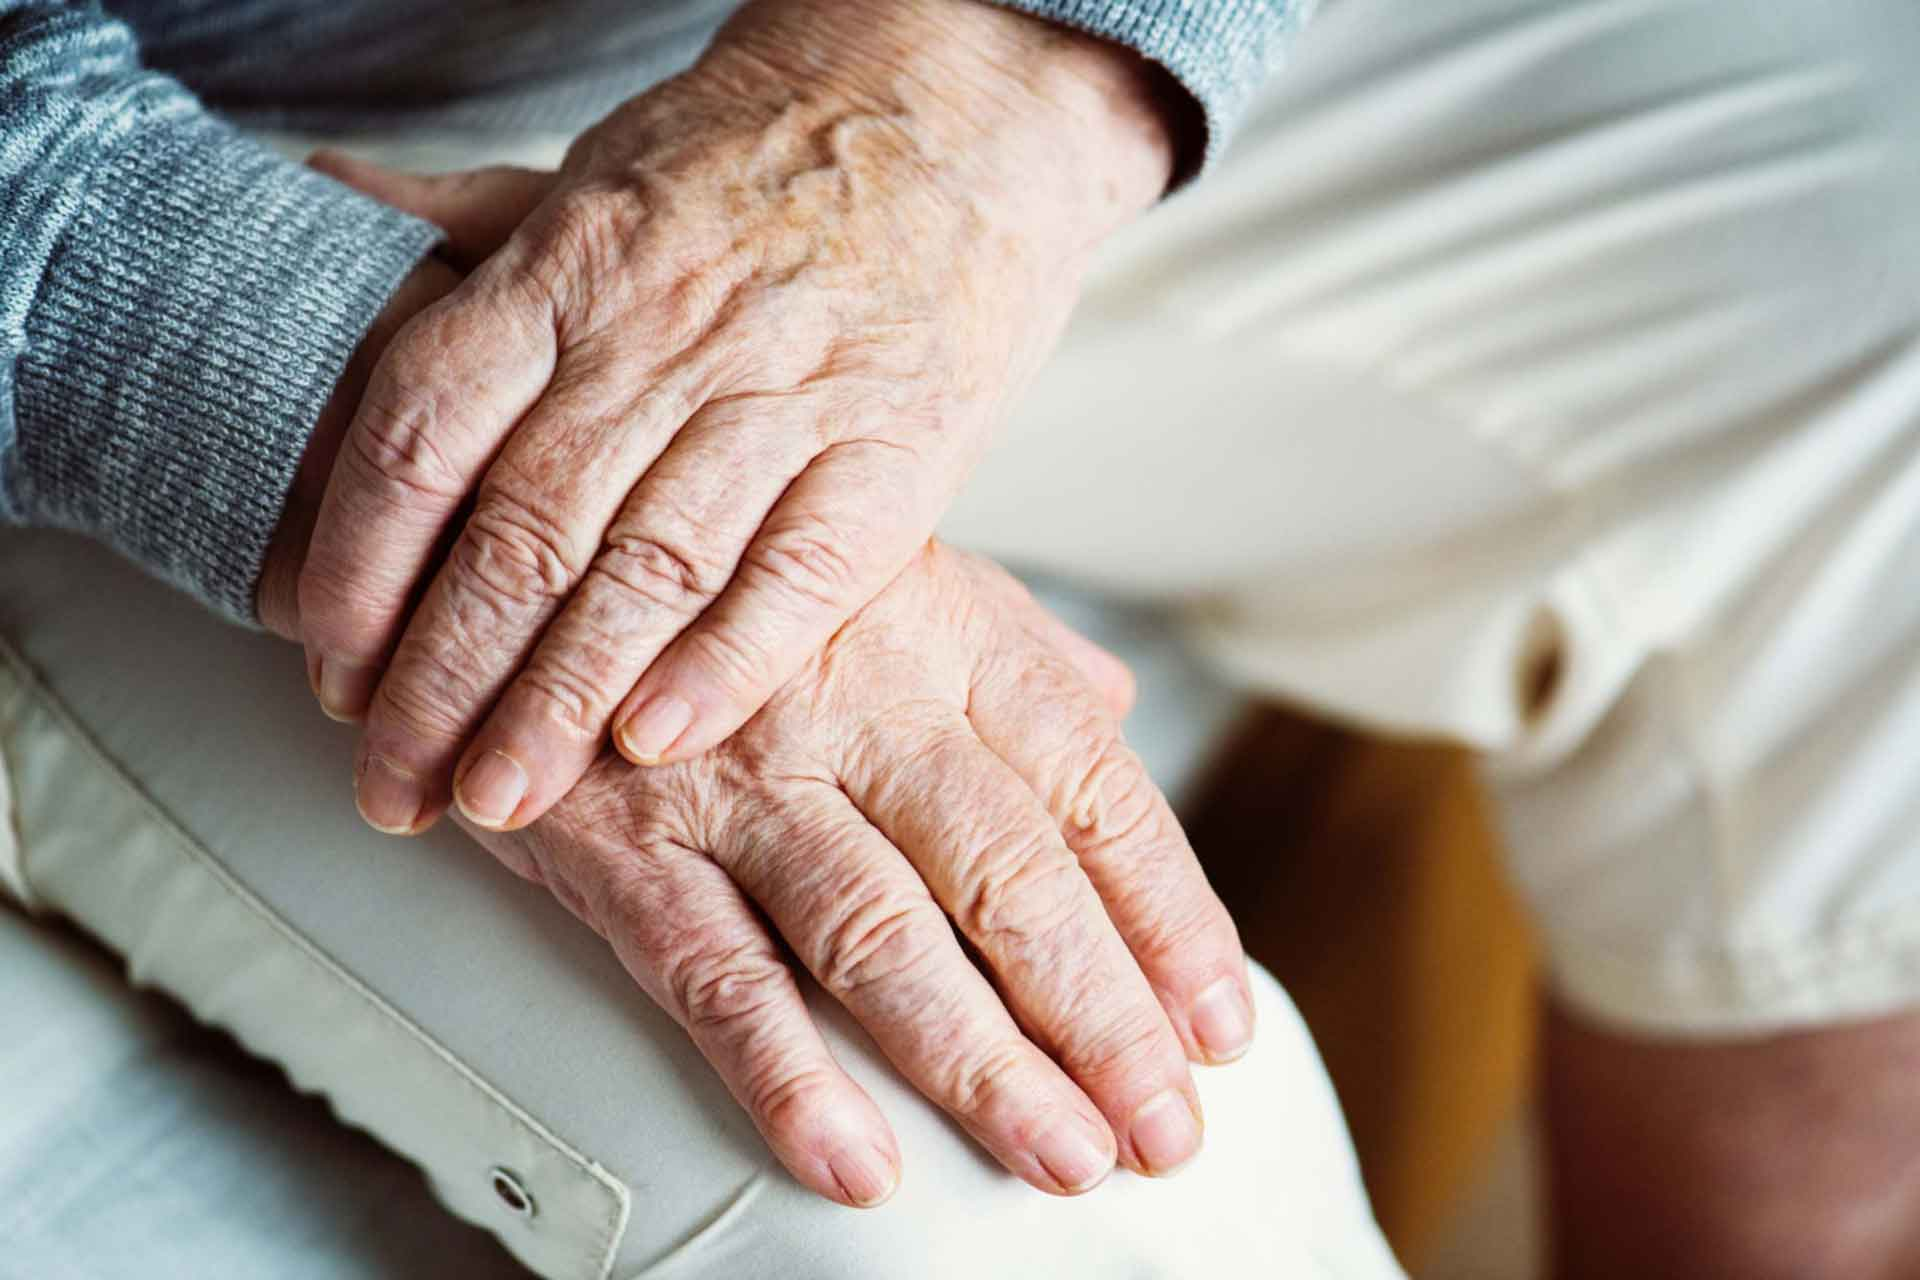 elderly hands from resident in a care home